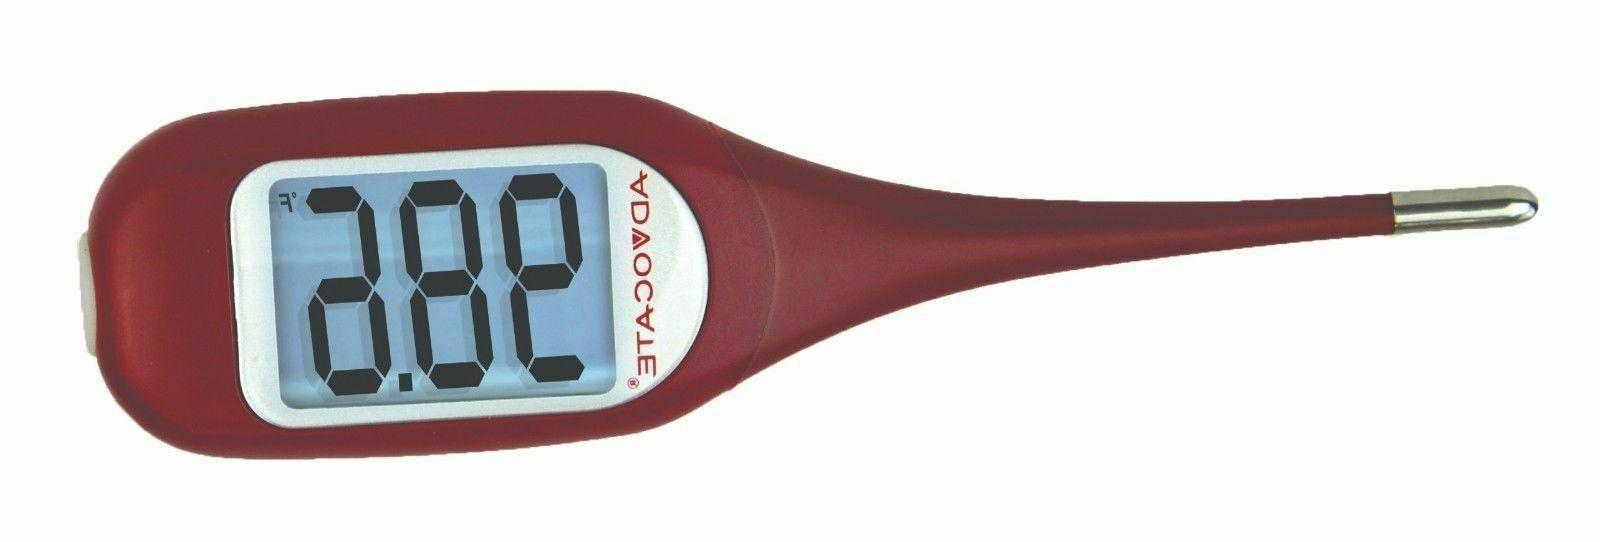 digital oral and rectal thermometer maroon color